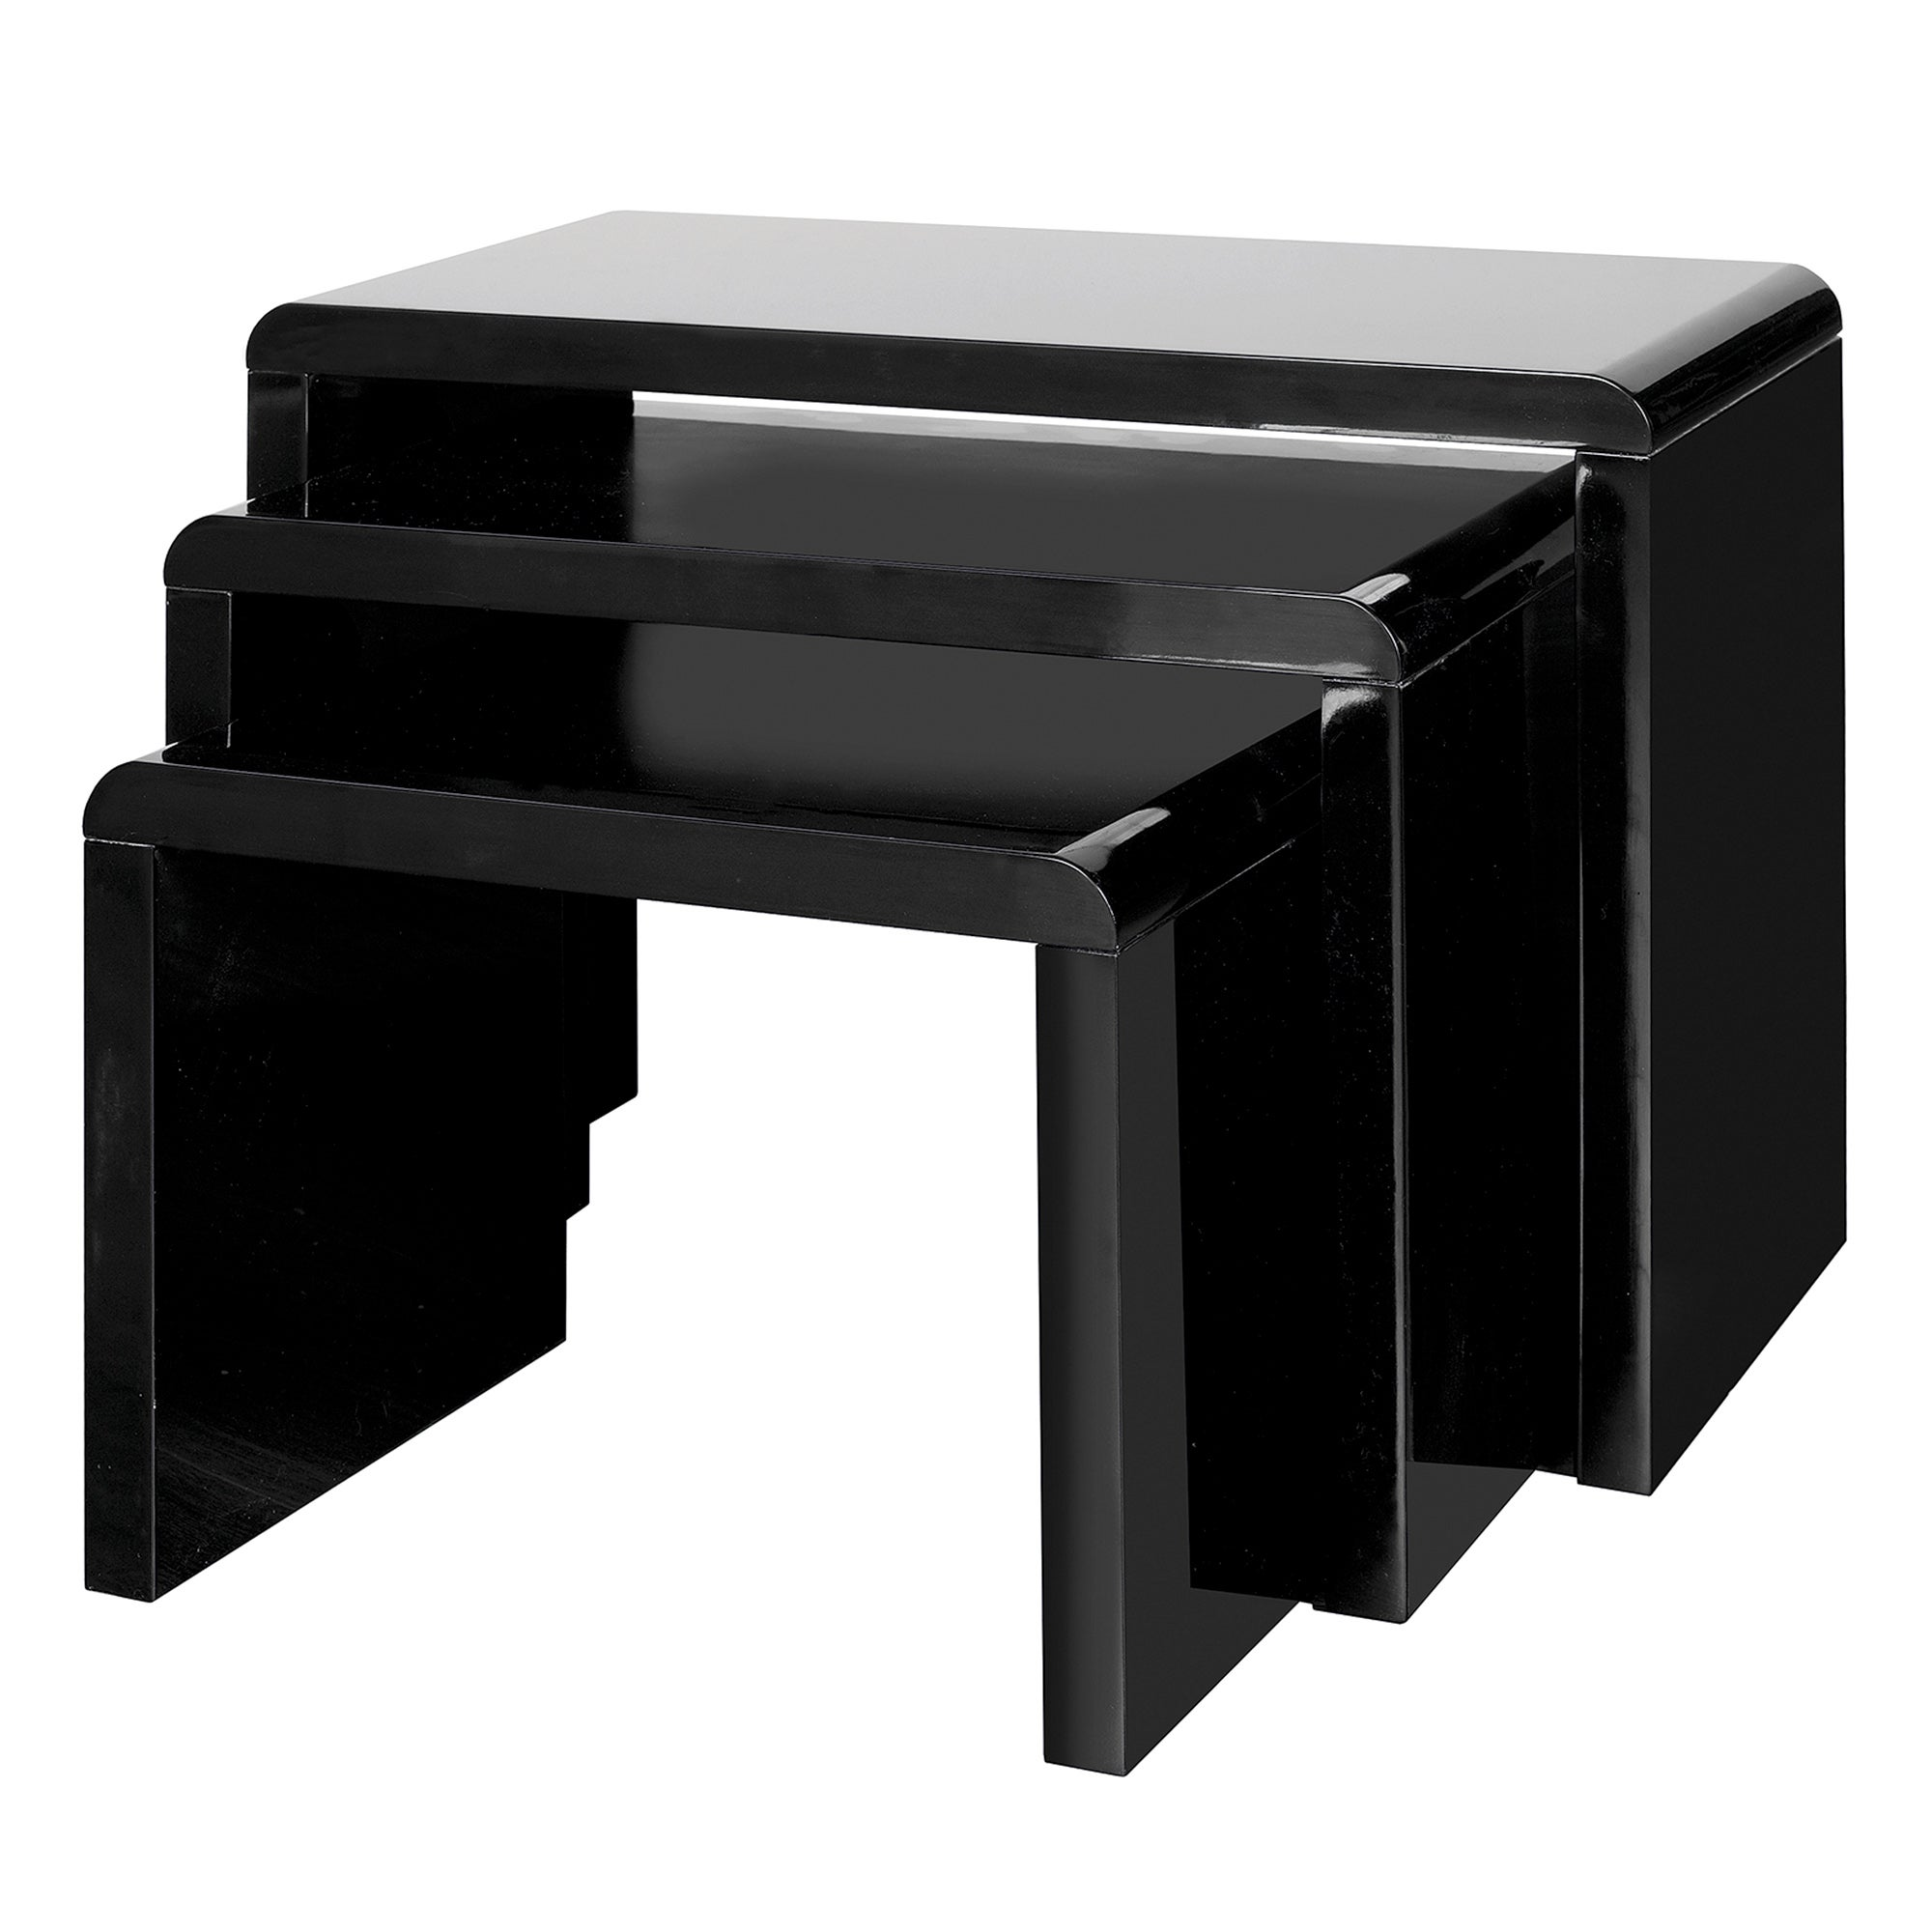 Soho Black Gloss Nest of Tables Black